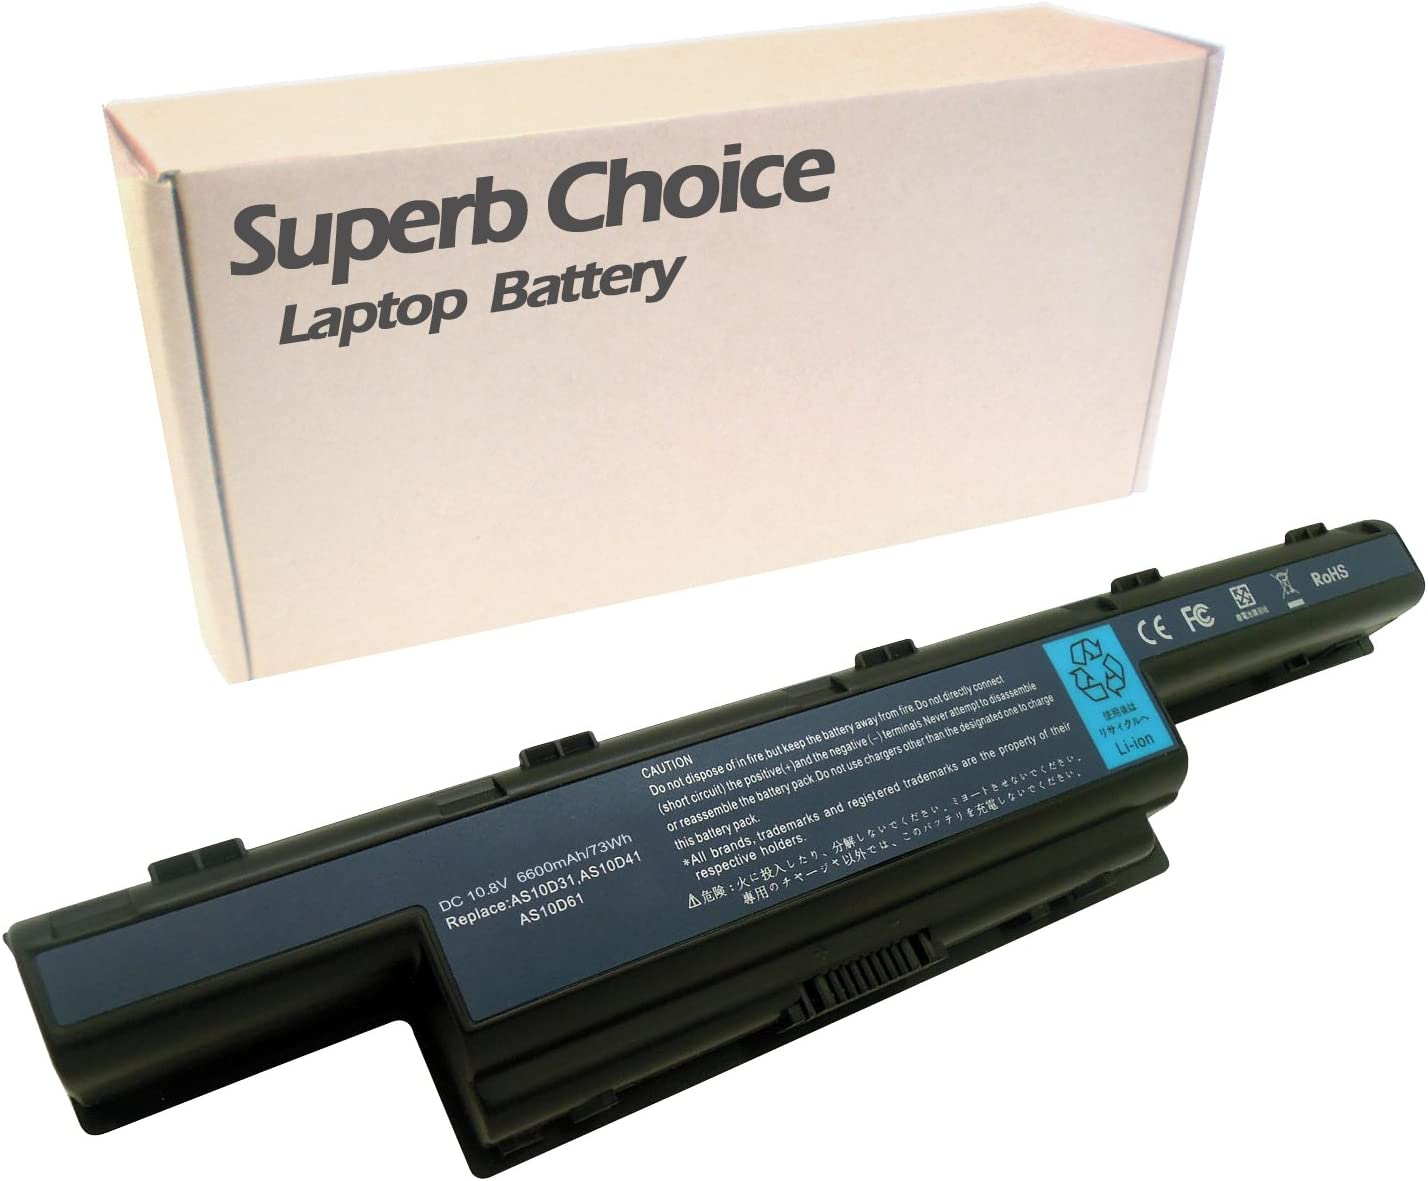 Superb Choice 9-Cell Battery Compatible with Acer Aspire 7741Z-4475 7741Z-4633 7741Z-4815